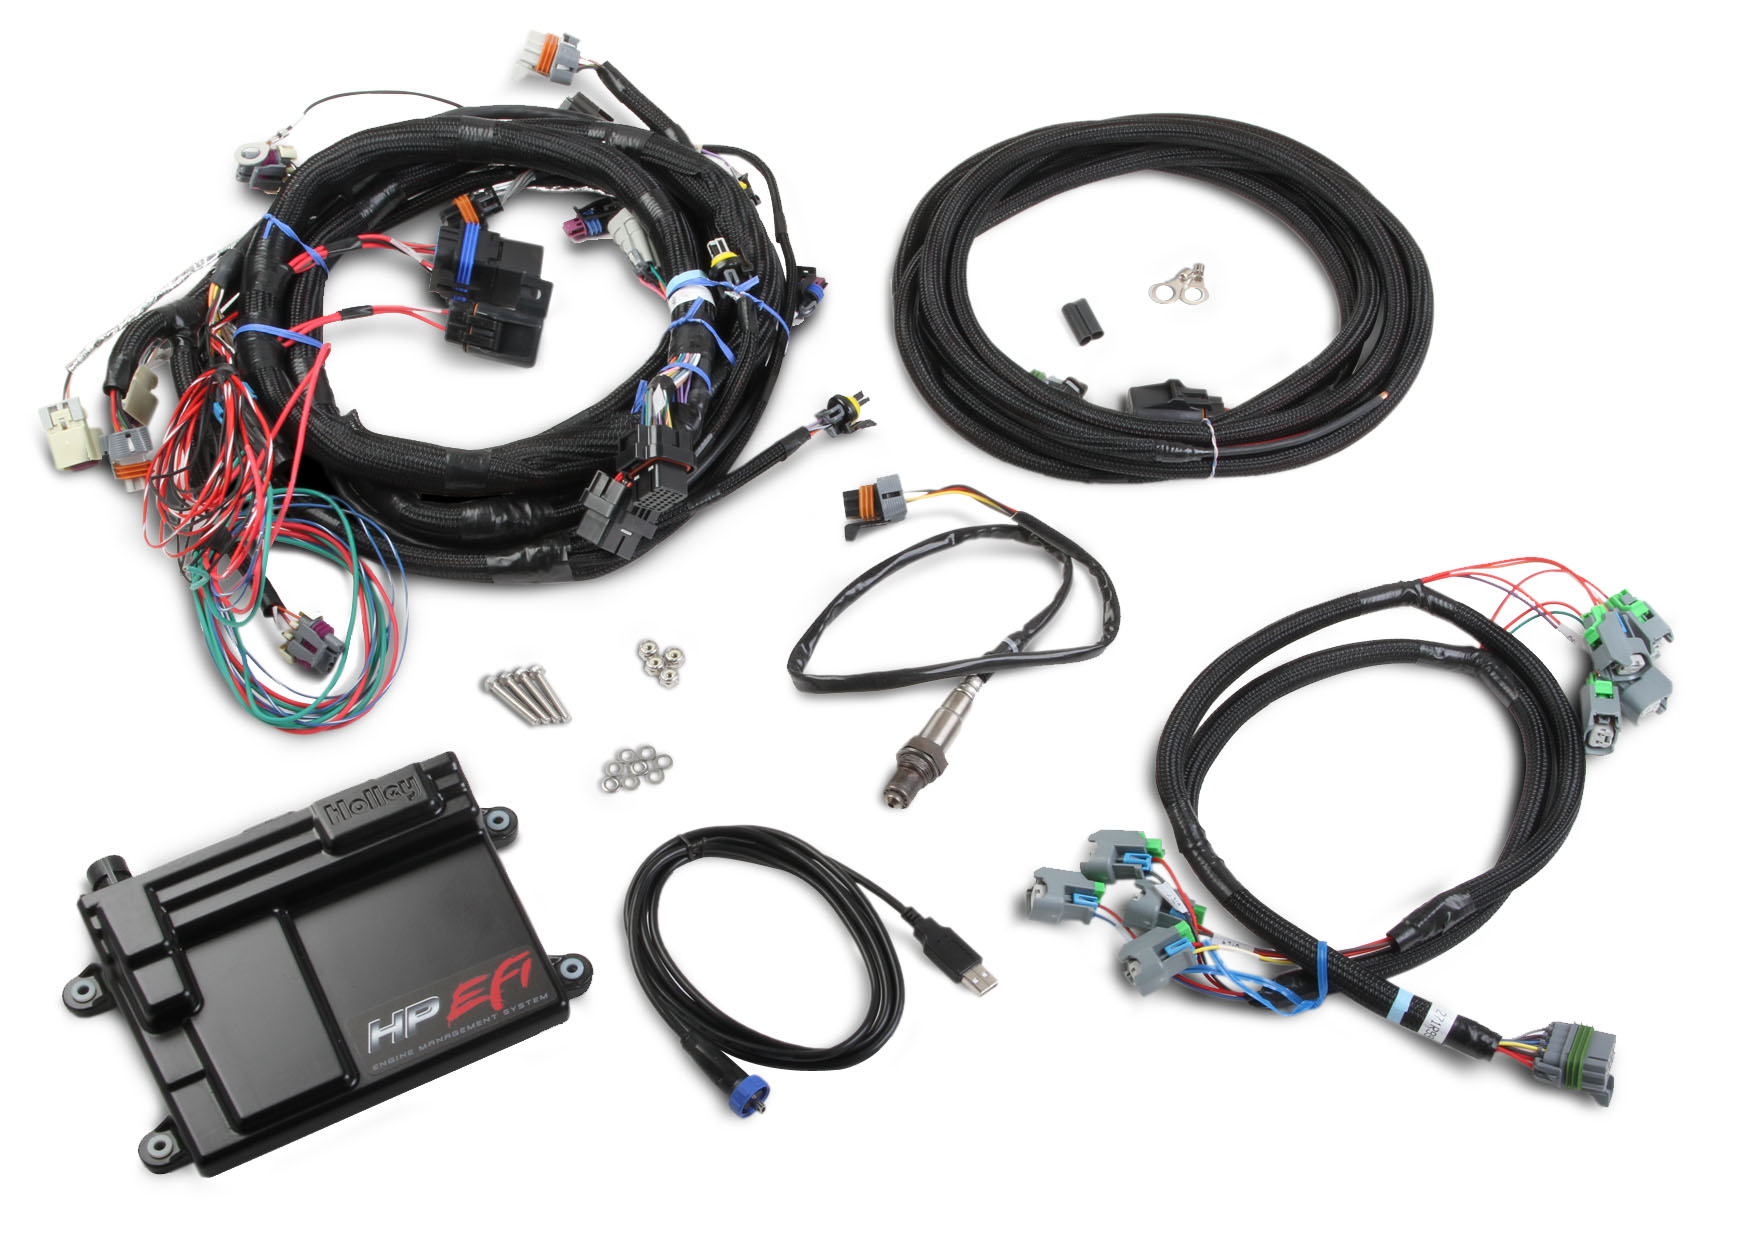 550-603  Gm Wiring Harness on radio harness, gm wiring gauge, obd2 to obd1 jumper harness, gm wiring alternator, gm wiring connectors, gm alternator harness,